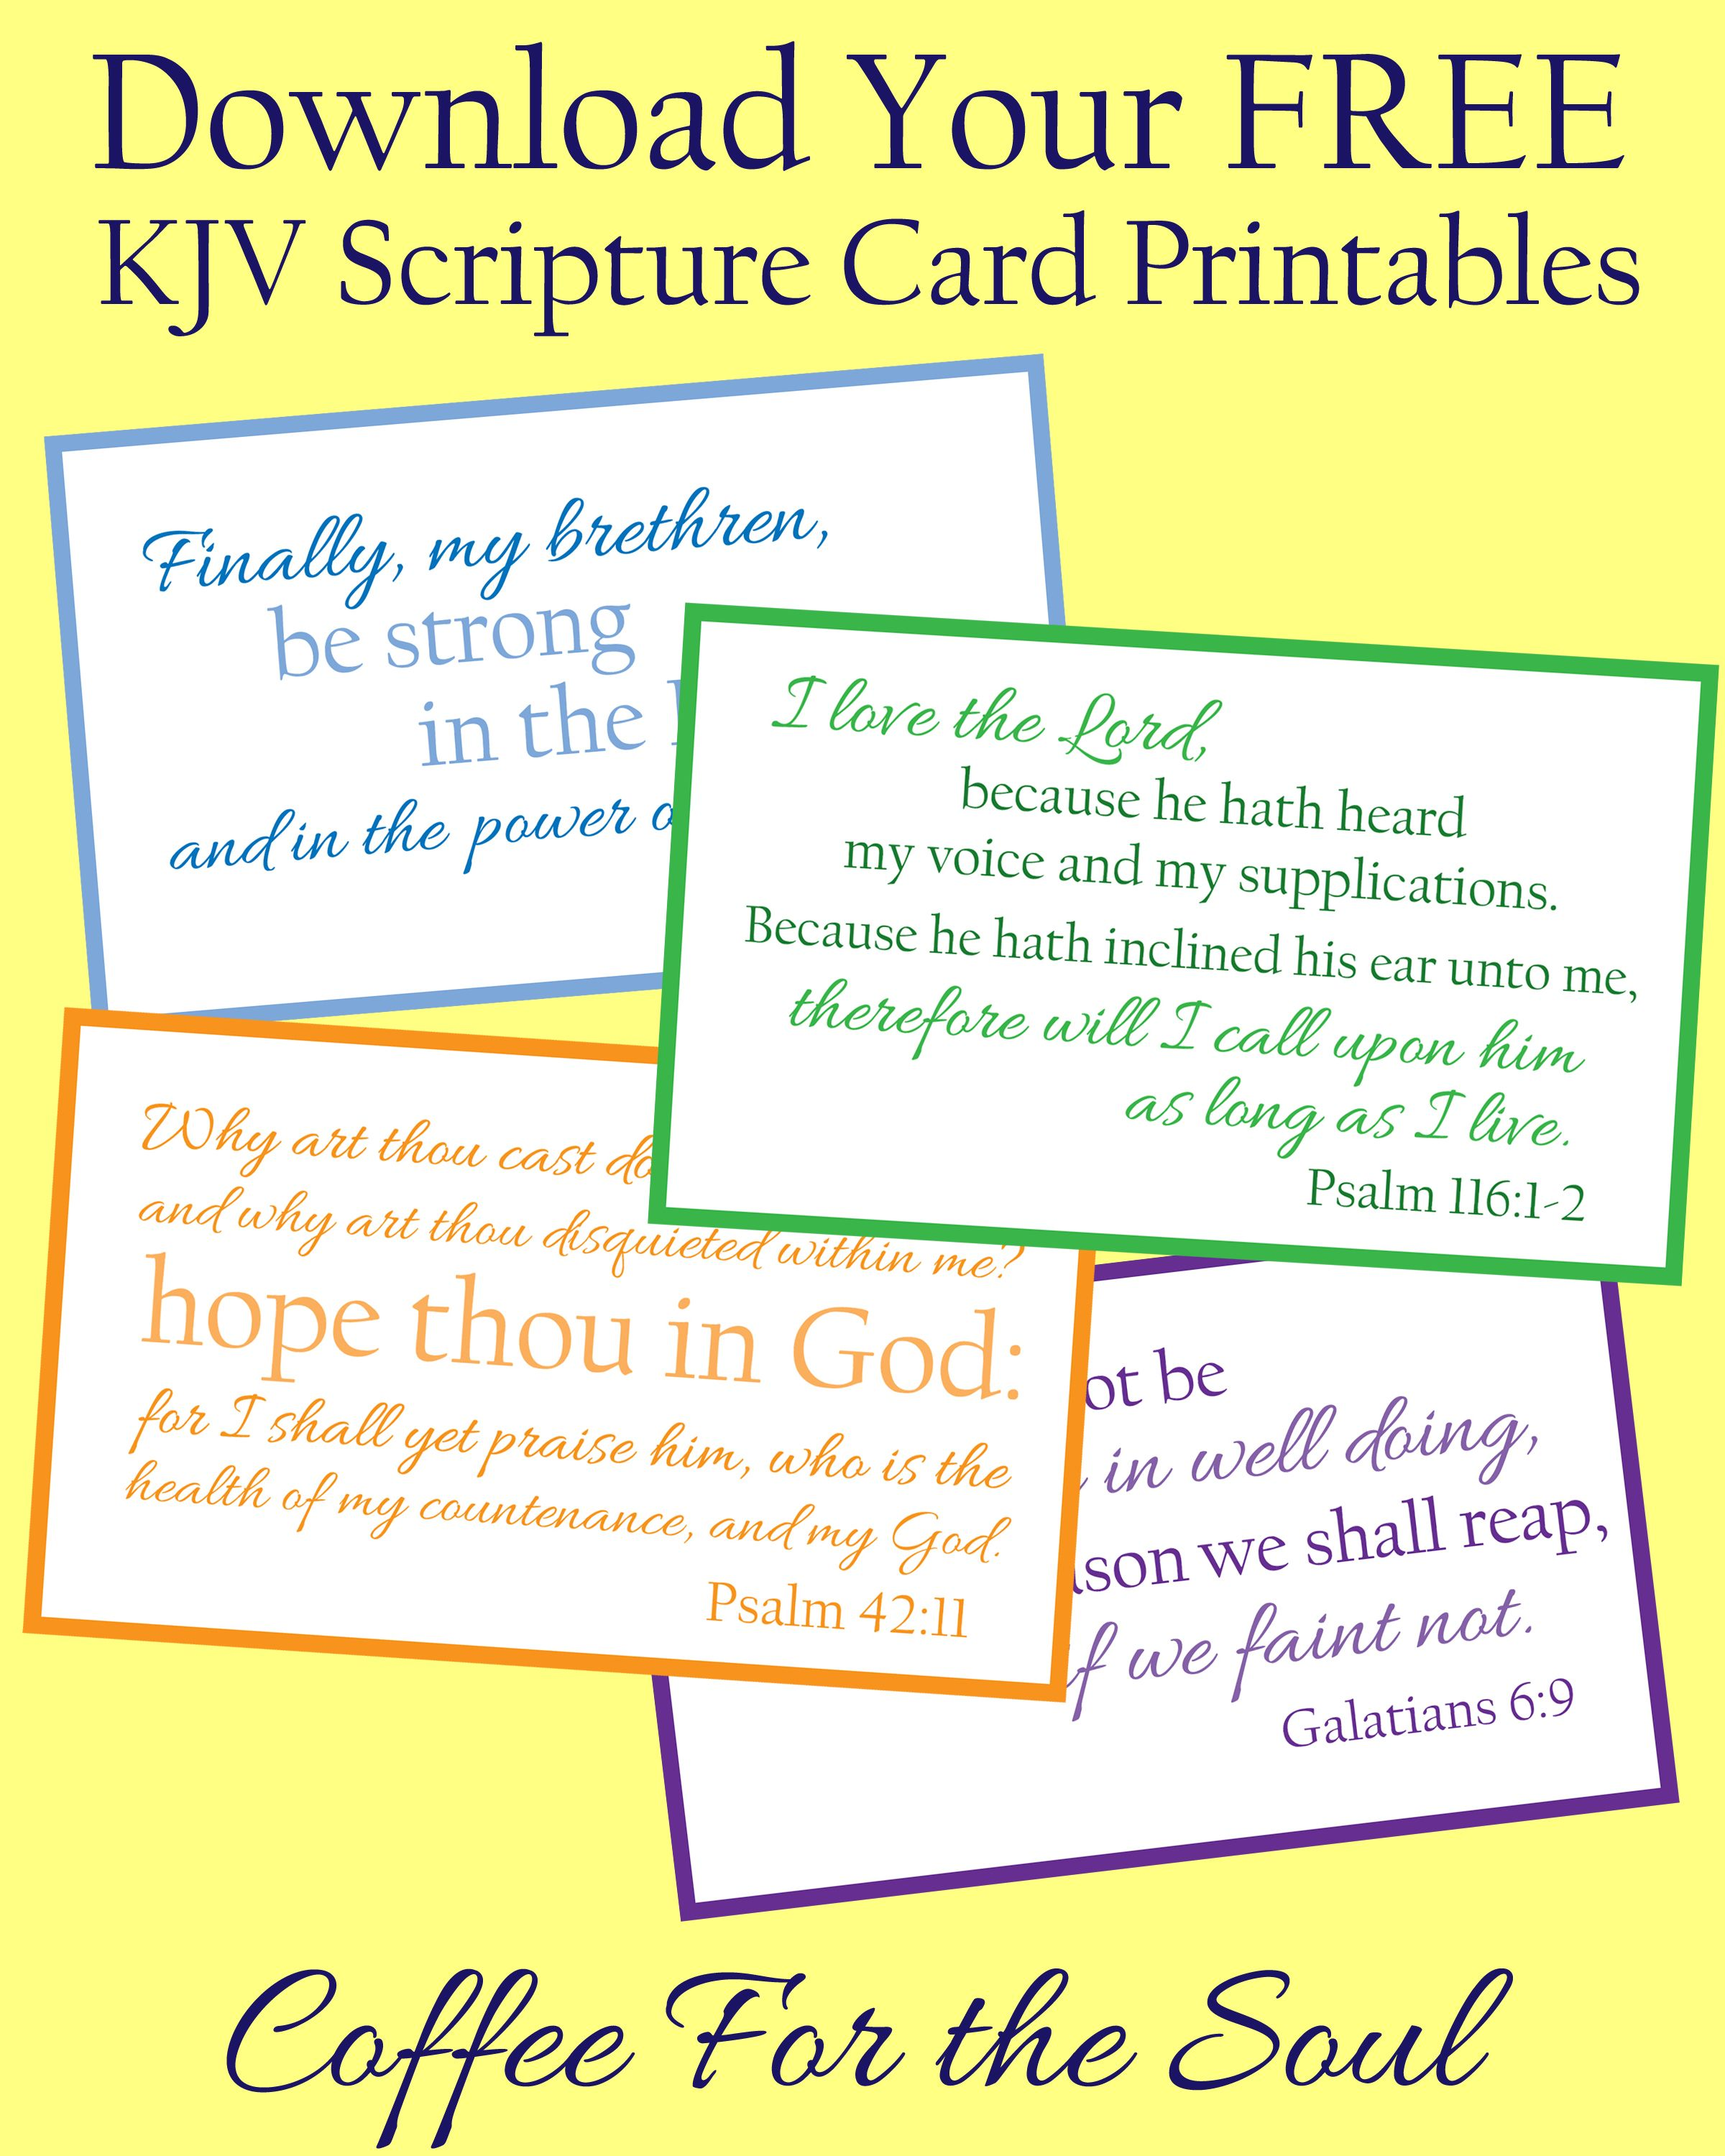 Free Kjv Scripture Card Printables